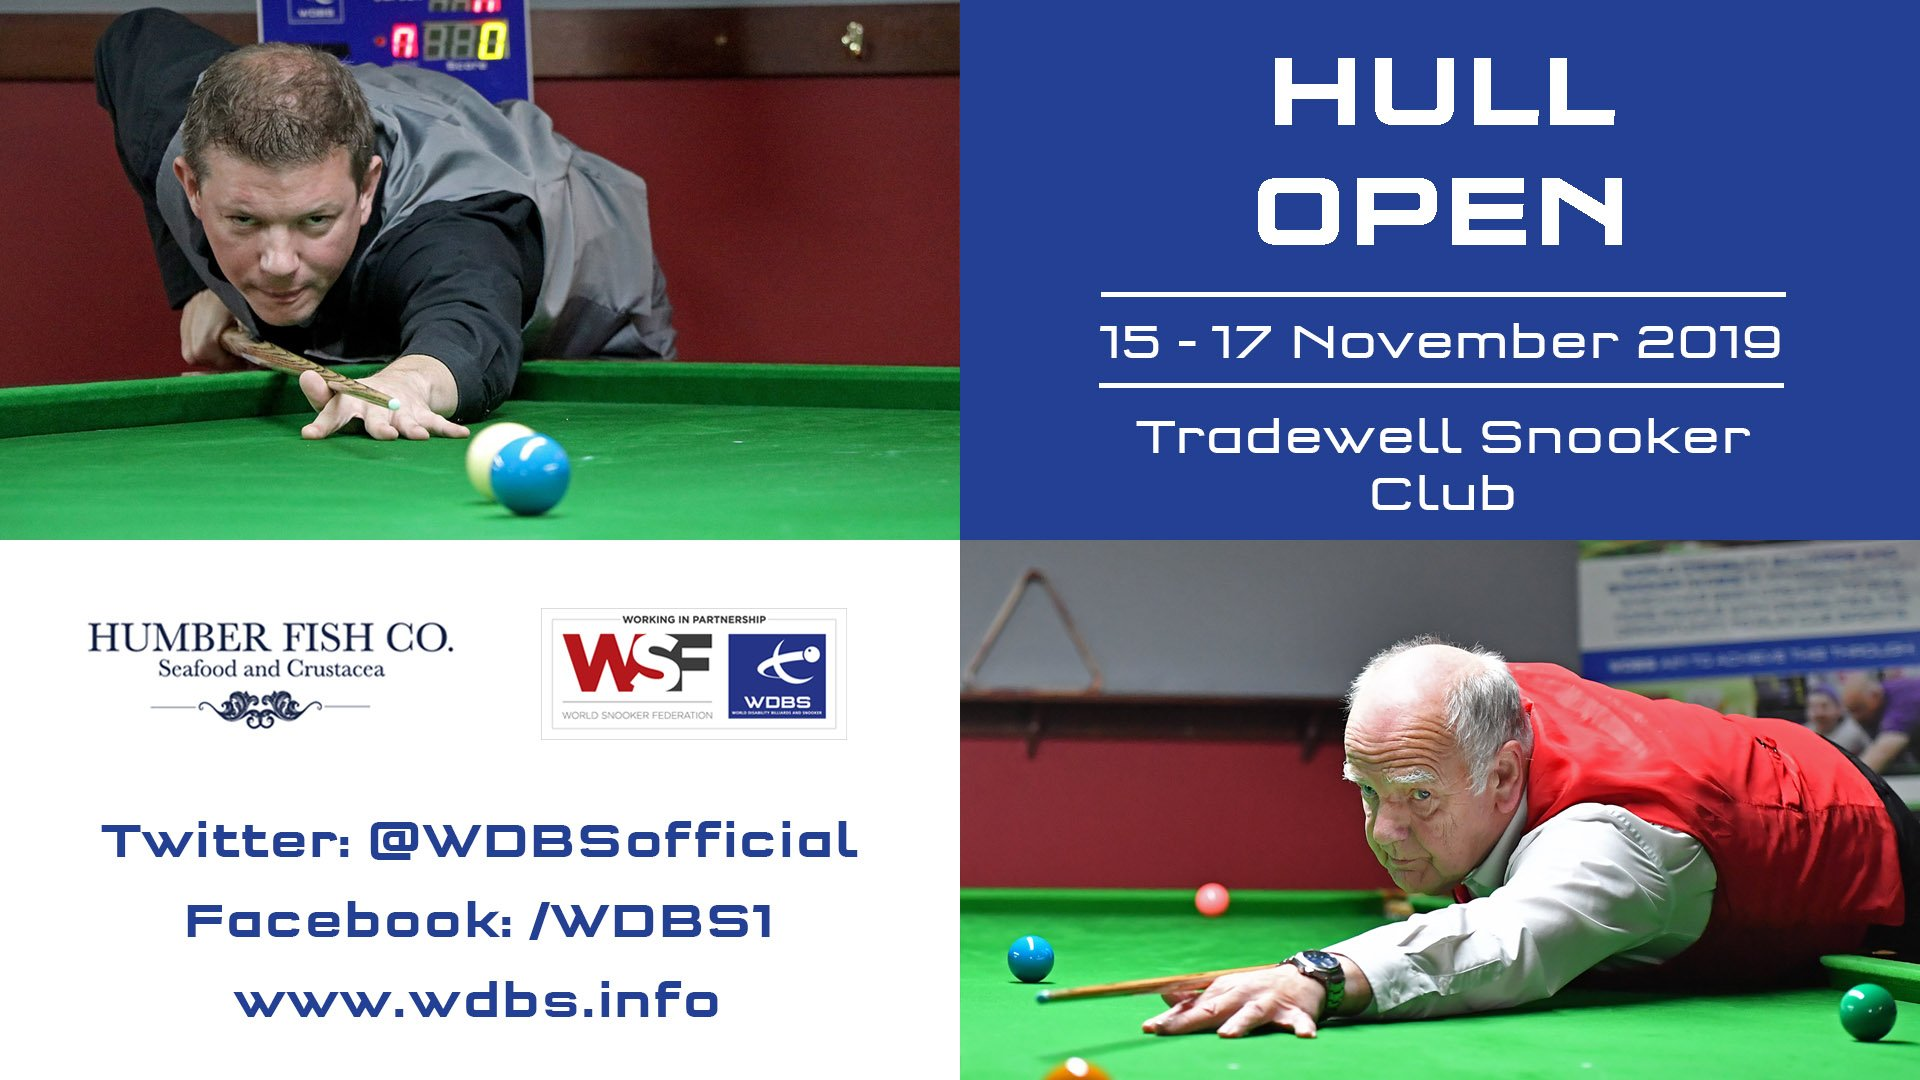 WDBS Hull Open 2019 banner